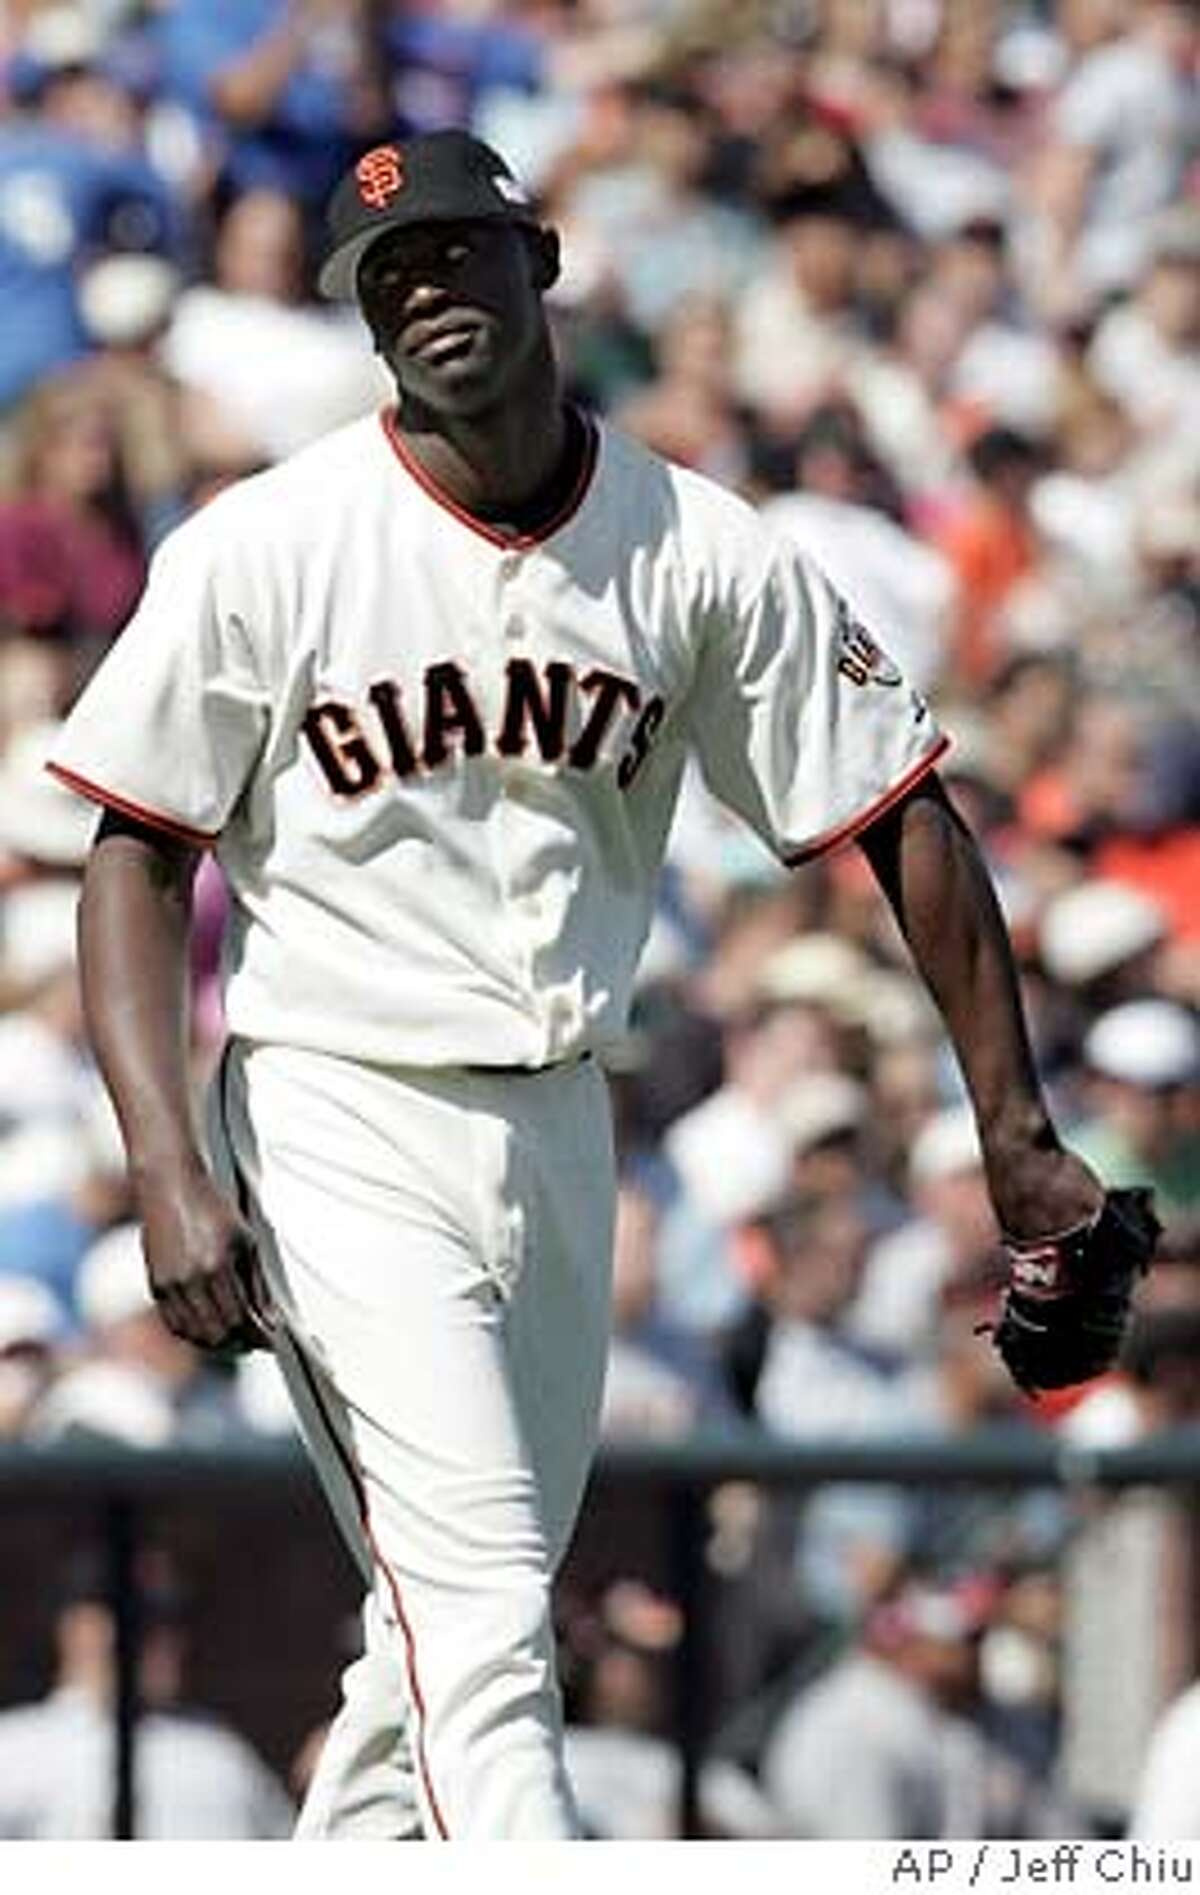 San Francisco Giants' LaTroy Hawkins walks away from the mound after giving up a tiebreaking RBI double to Chicago Cubs' Neifi Perez in the eighth inning in San Francisco on Sunday, Sept. 11, 2005. The Cubs won 3-2. Hawkins was the losing pitcher. (AP Photo/Jeff Chiu)